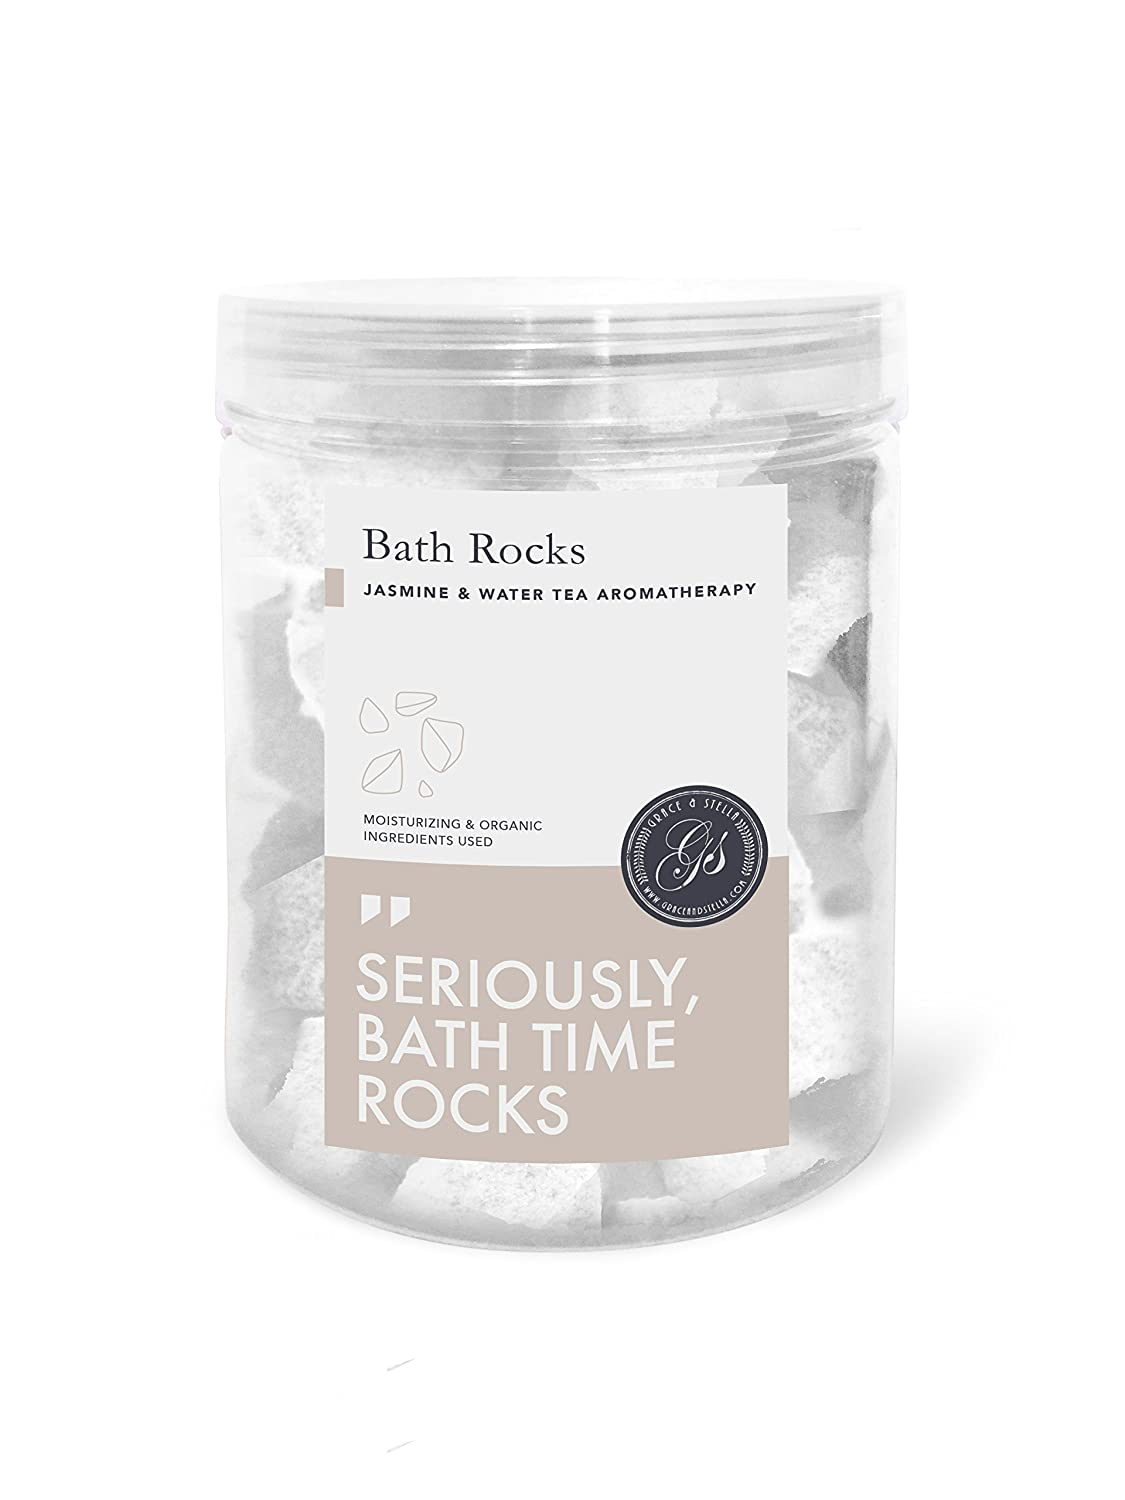 Bath Bomb Rocks (320g) - Best Gift Idea - Highest Quality Ingredients and Shea Butter for Moisturizing Dry Skin - Ultra Lux Essential Oil Handmade Spa Fizzies - Top Relaxation Box (Jasmine) Grace & Stella Co.